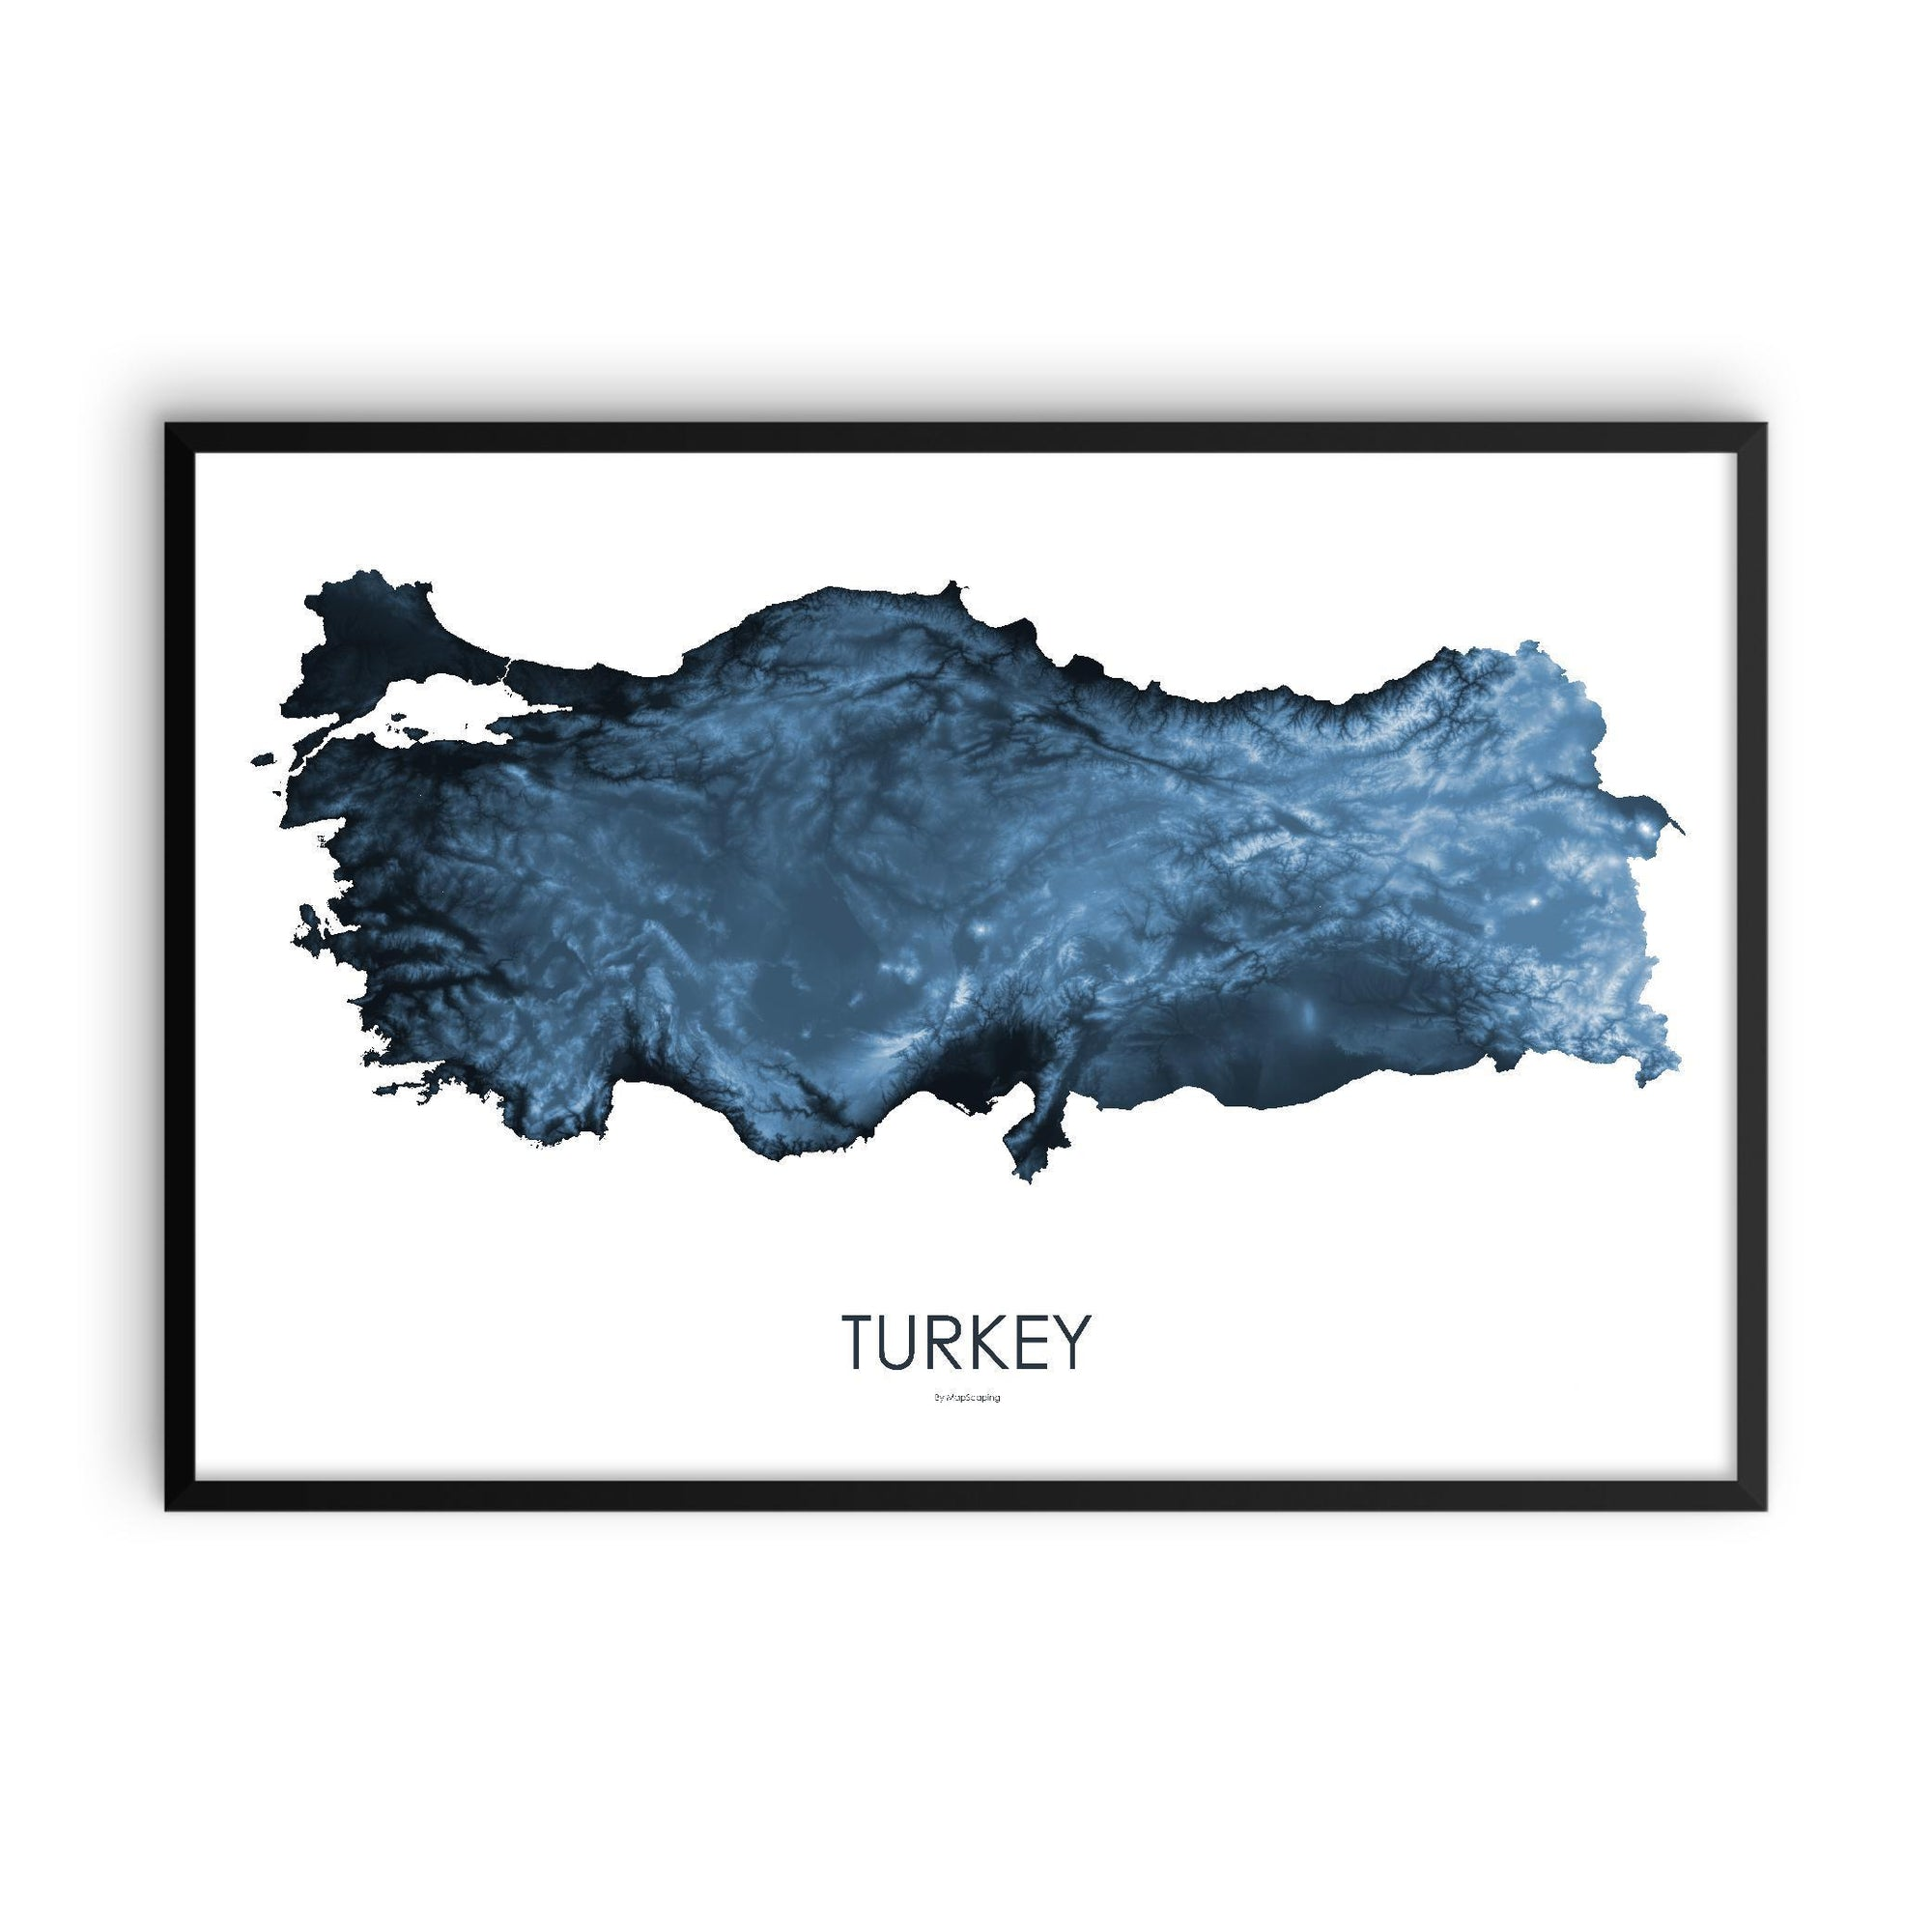 Turkey Poster Midnight Blue-topographic wall art map by MapScaping